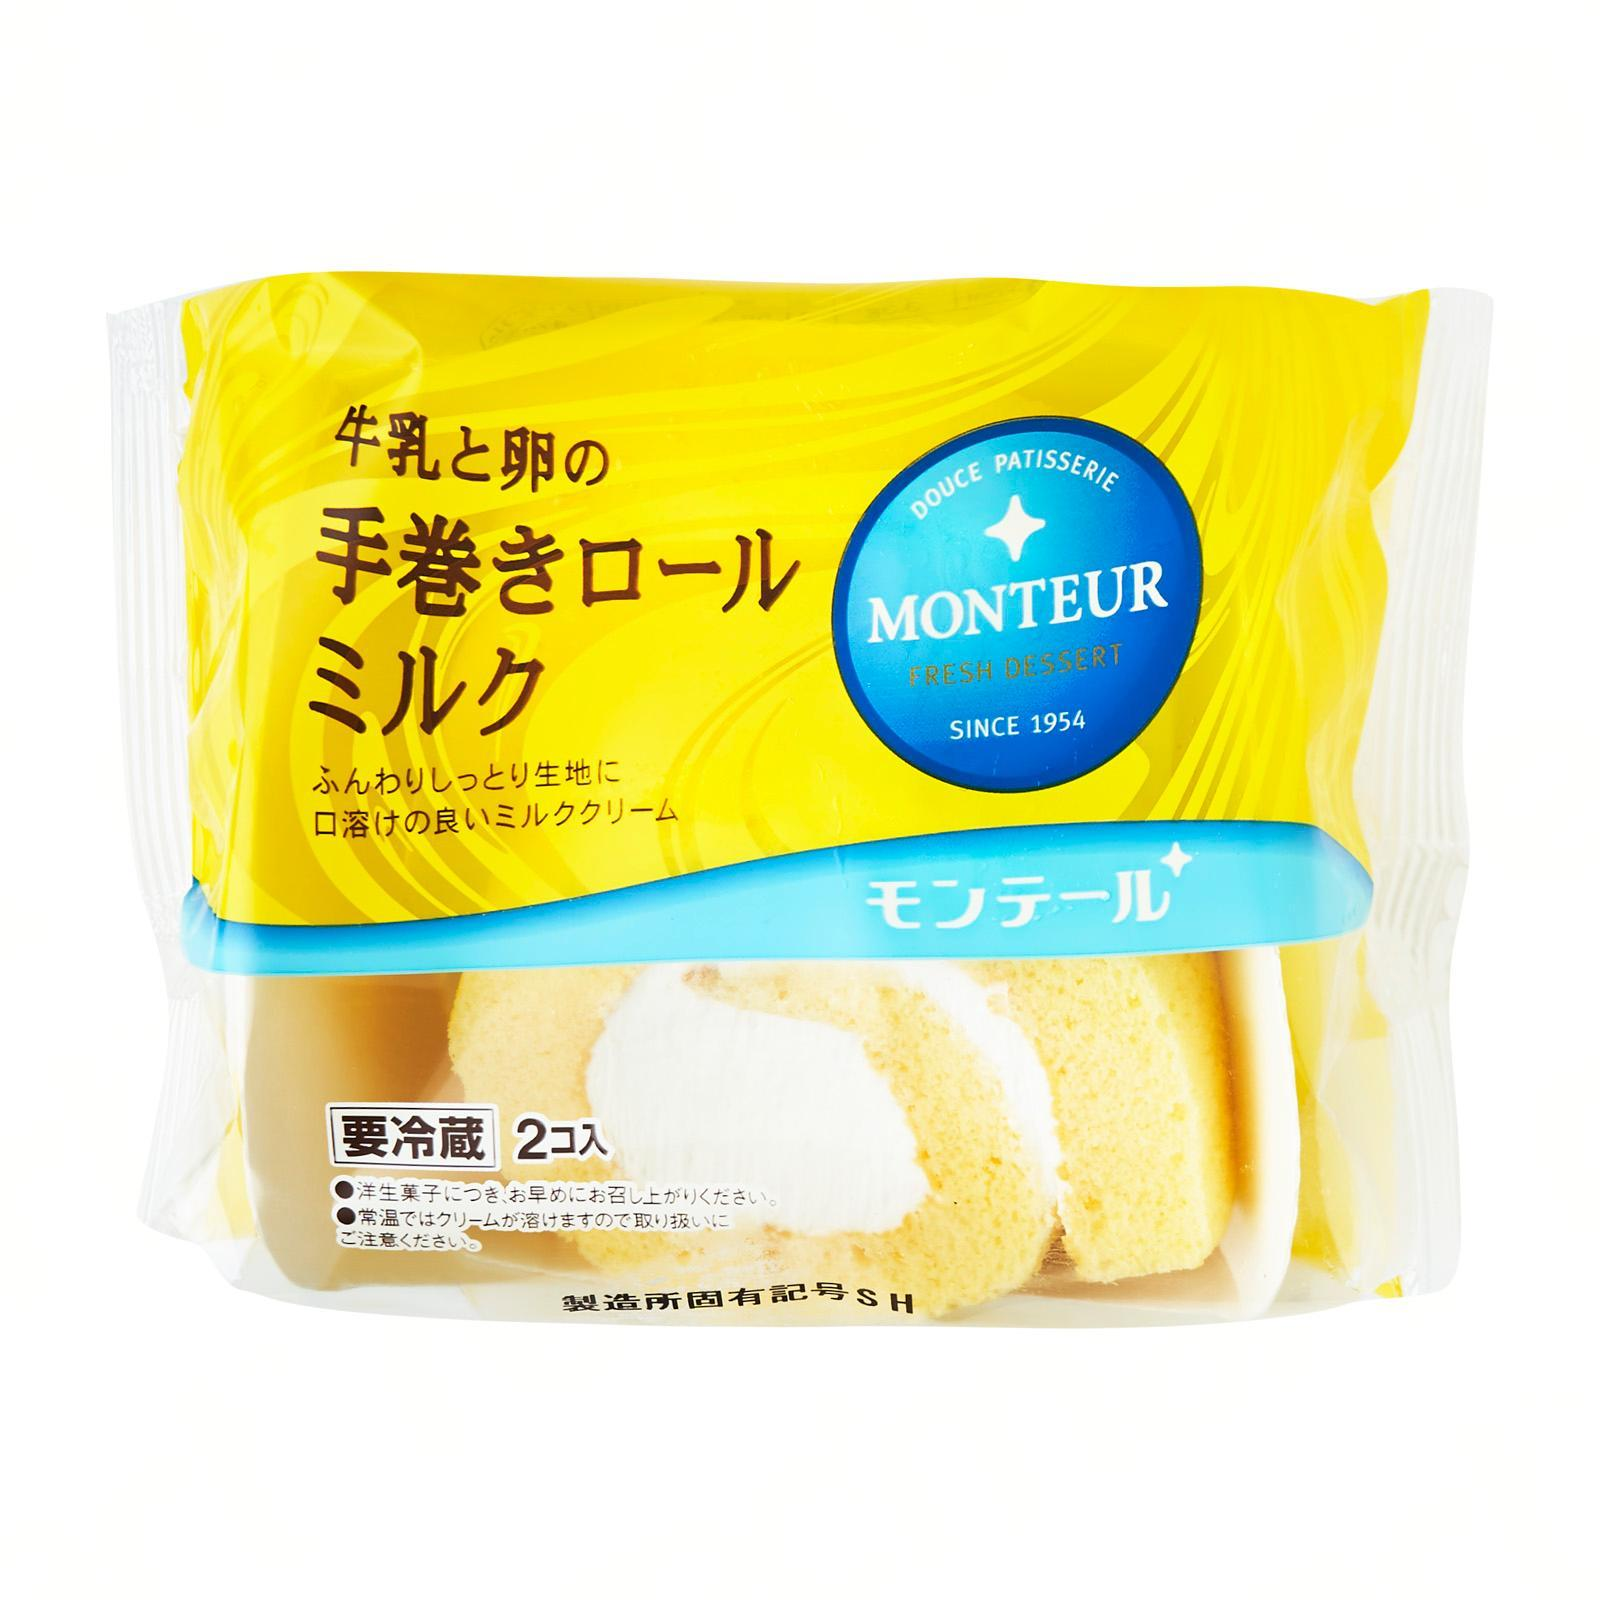 Monteur Milk Roll Cake - by J-mart Japanese Food Market -Frozen